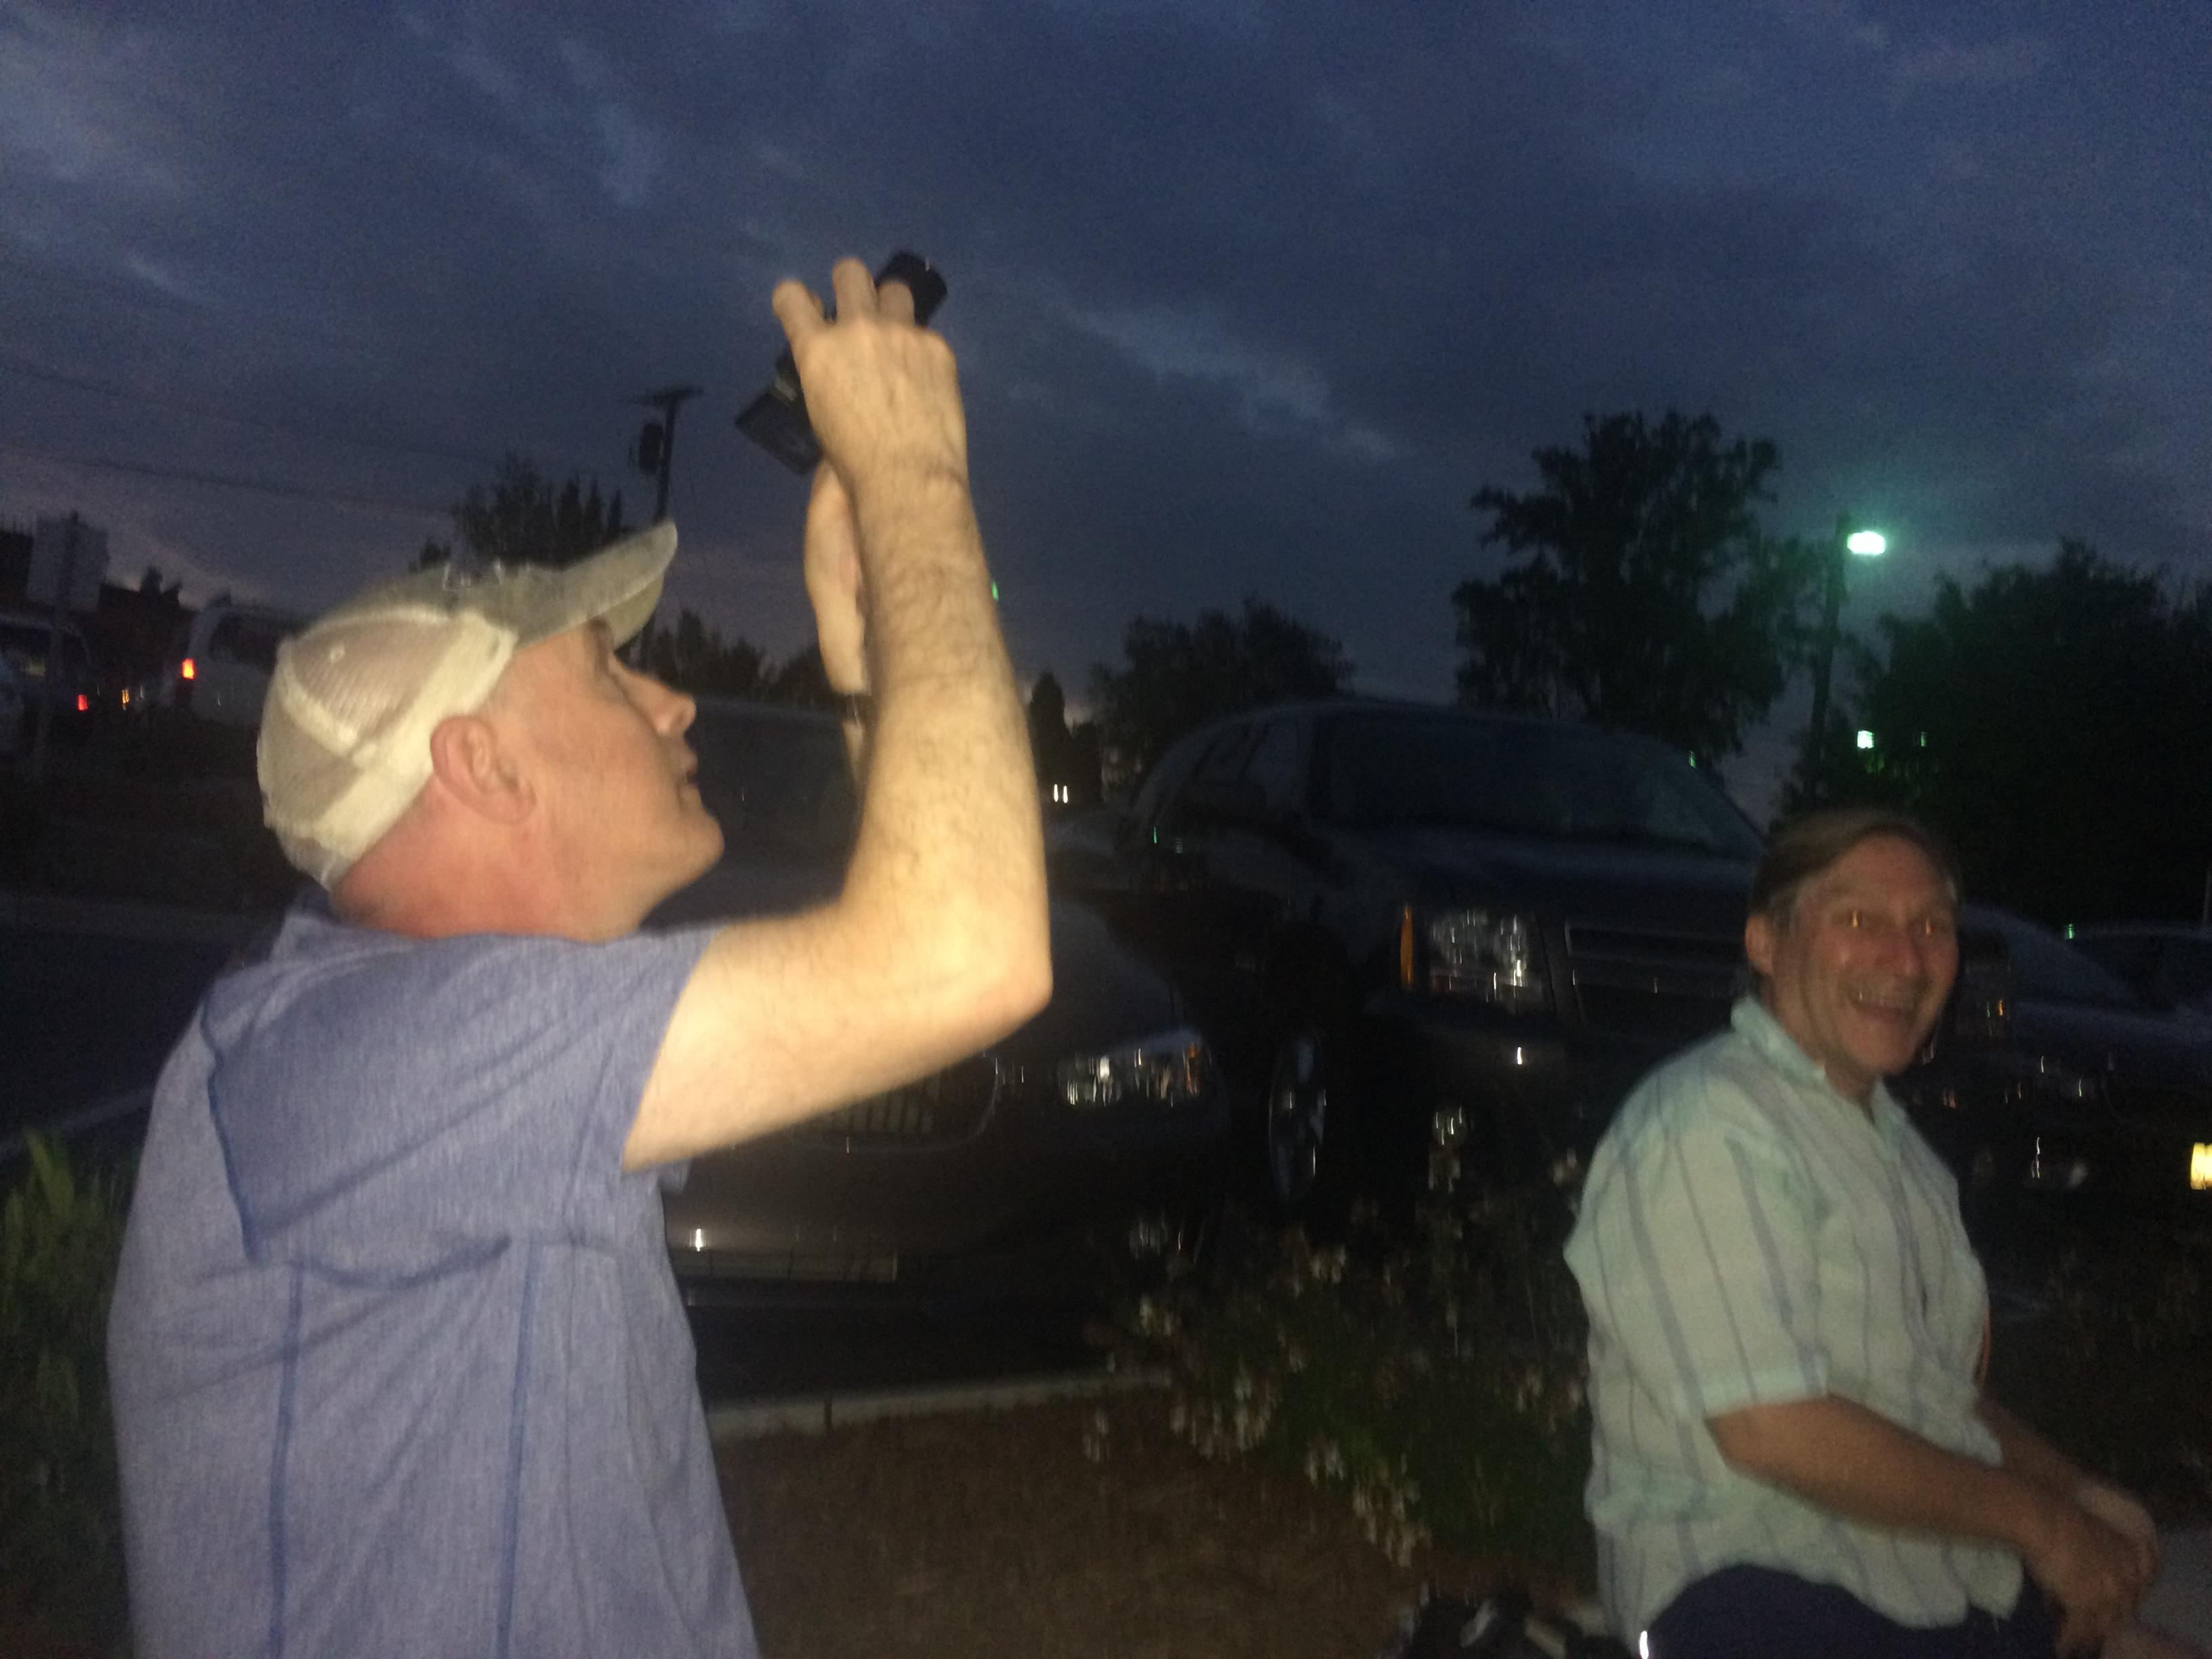 """It was really great to see the good people of Brevard shutting down from 2 to 3 o'clock,"" said Edward Strickler, who traveled with Jim Schneider from Charlottesville, Virginia. ""All the city offices closed and enjoying life together."" (Photo credit: WLOS Staff)"